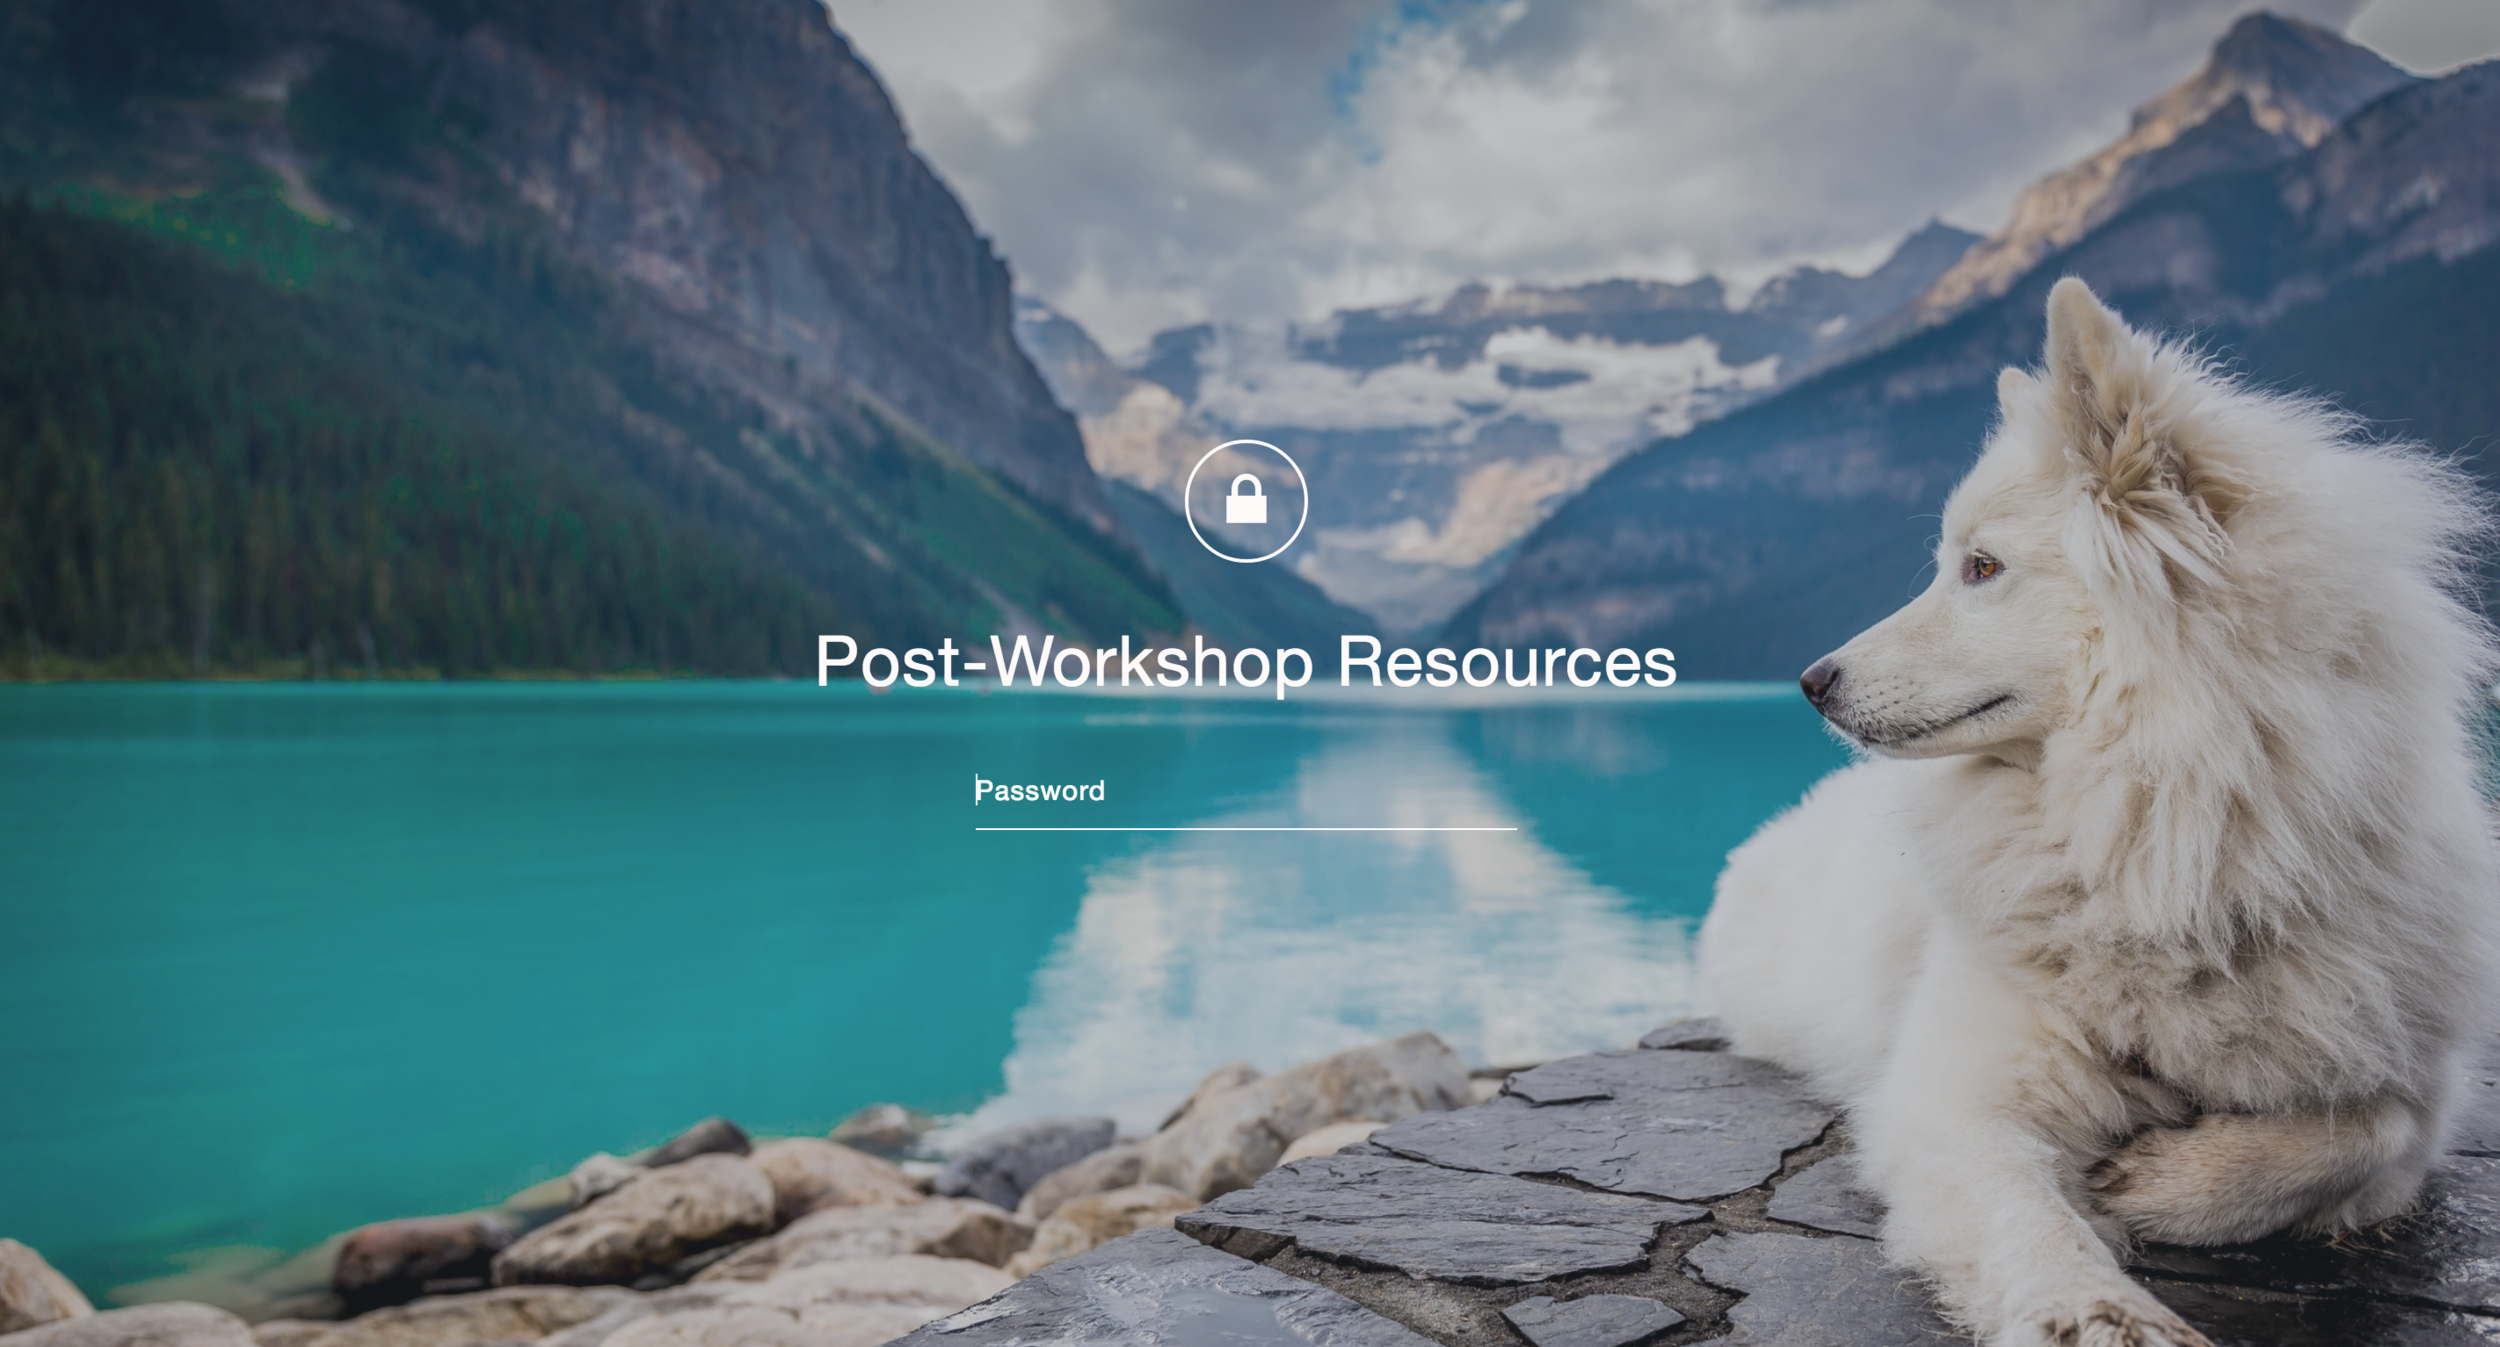 Post-Workshop Resources for building your Squarespace Site